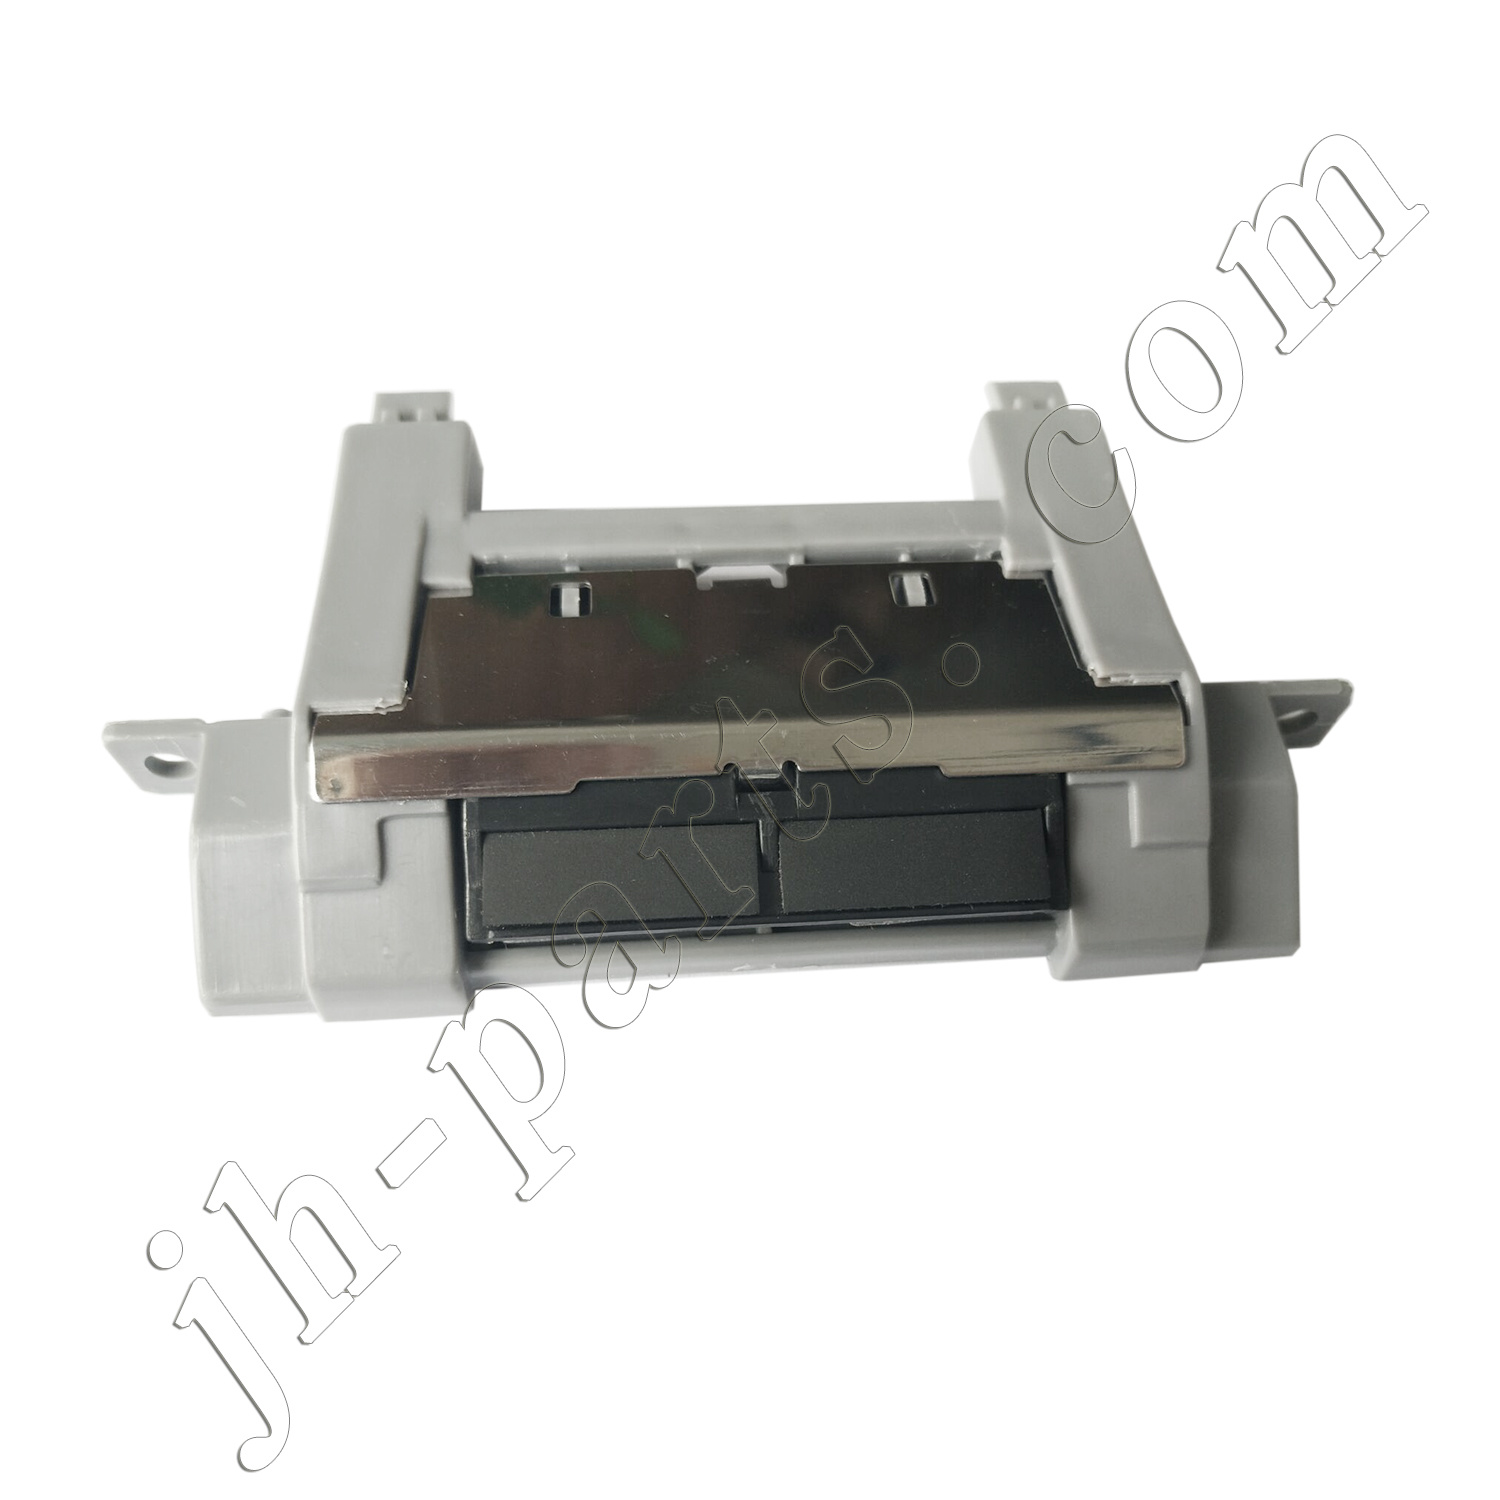 China Rm1 6303 000cn Separation Pad Holder Assembly For Laserjet Pick Up Roller Tray 1 Hp P2035 P2055 M401 P3015 M425 M525 With